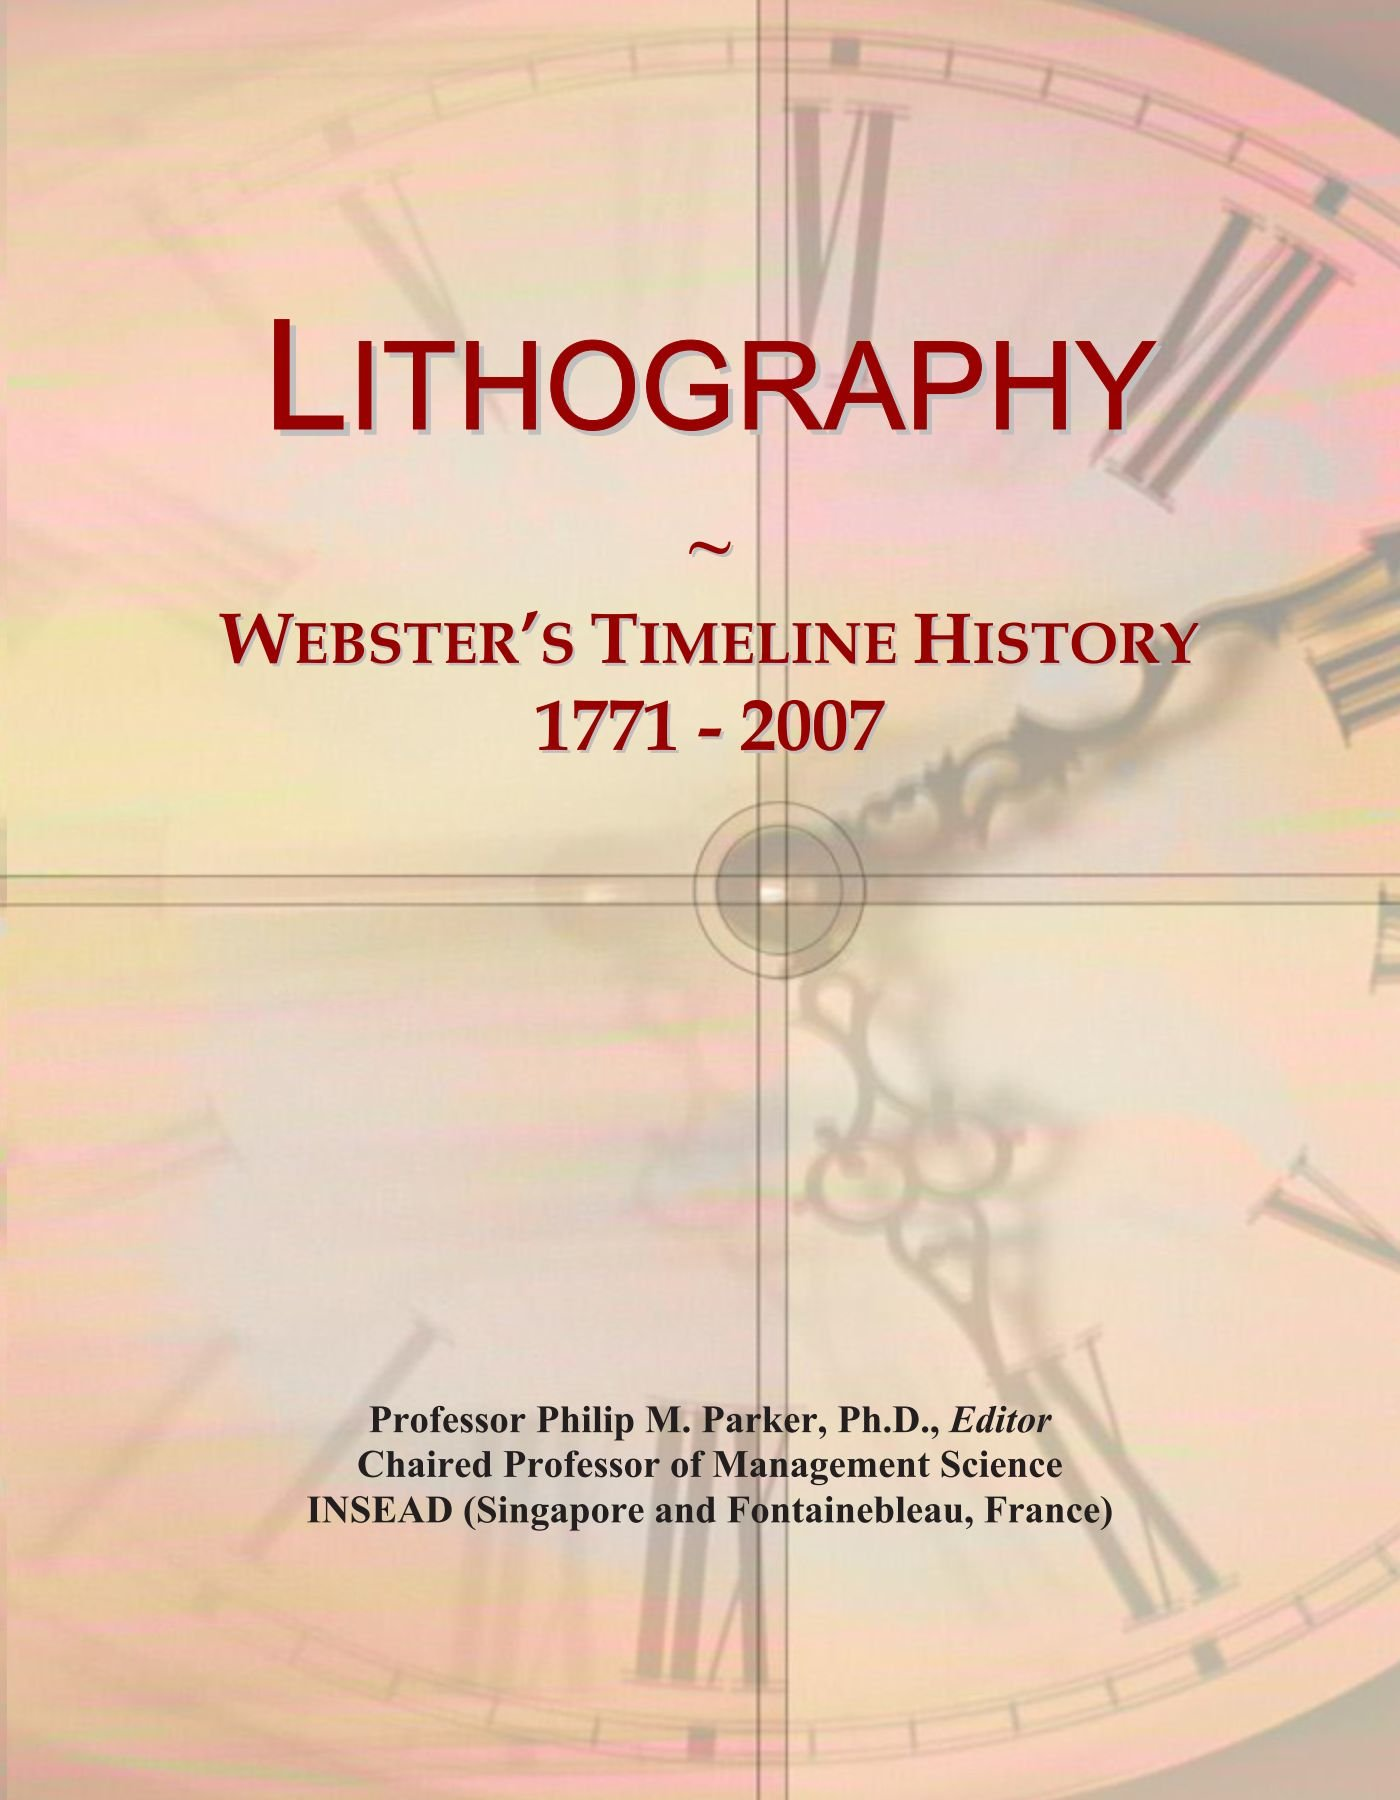 Lithography: Webster's Timeline History, 1771 - 2007